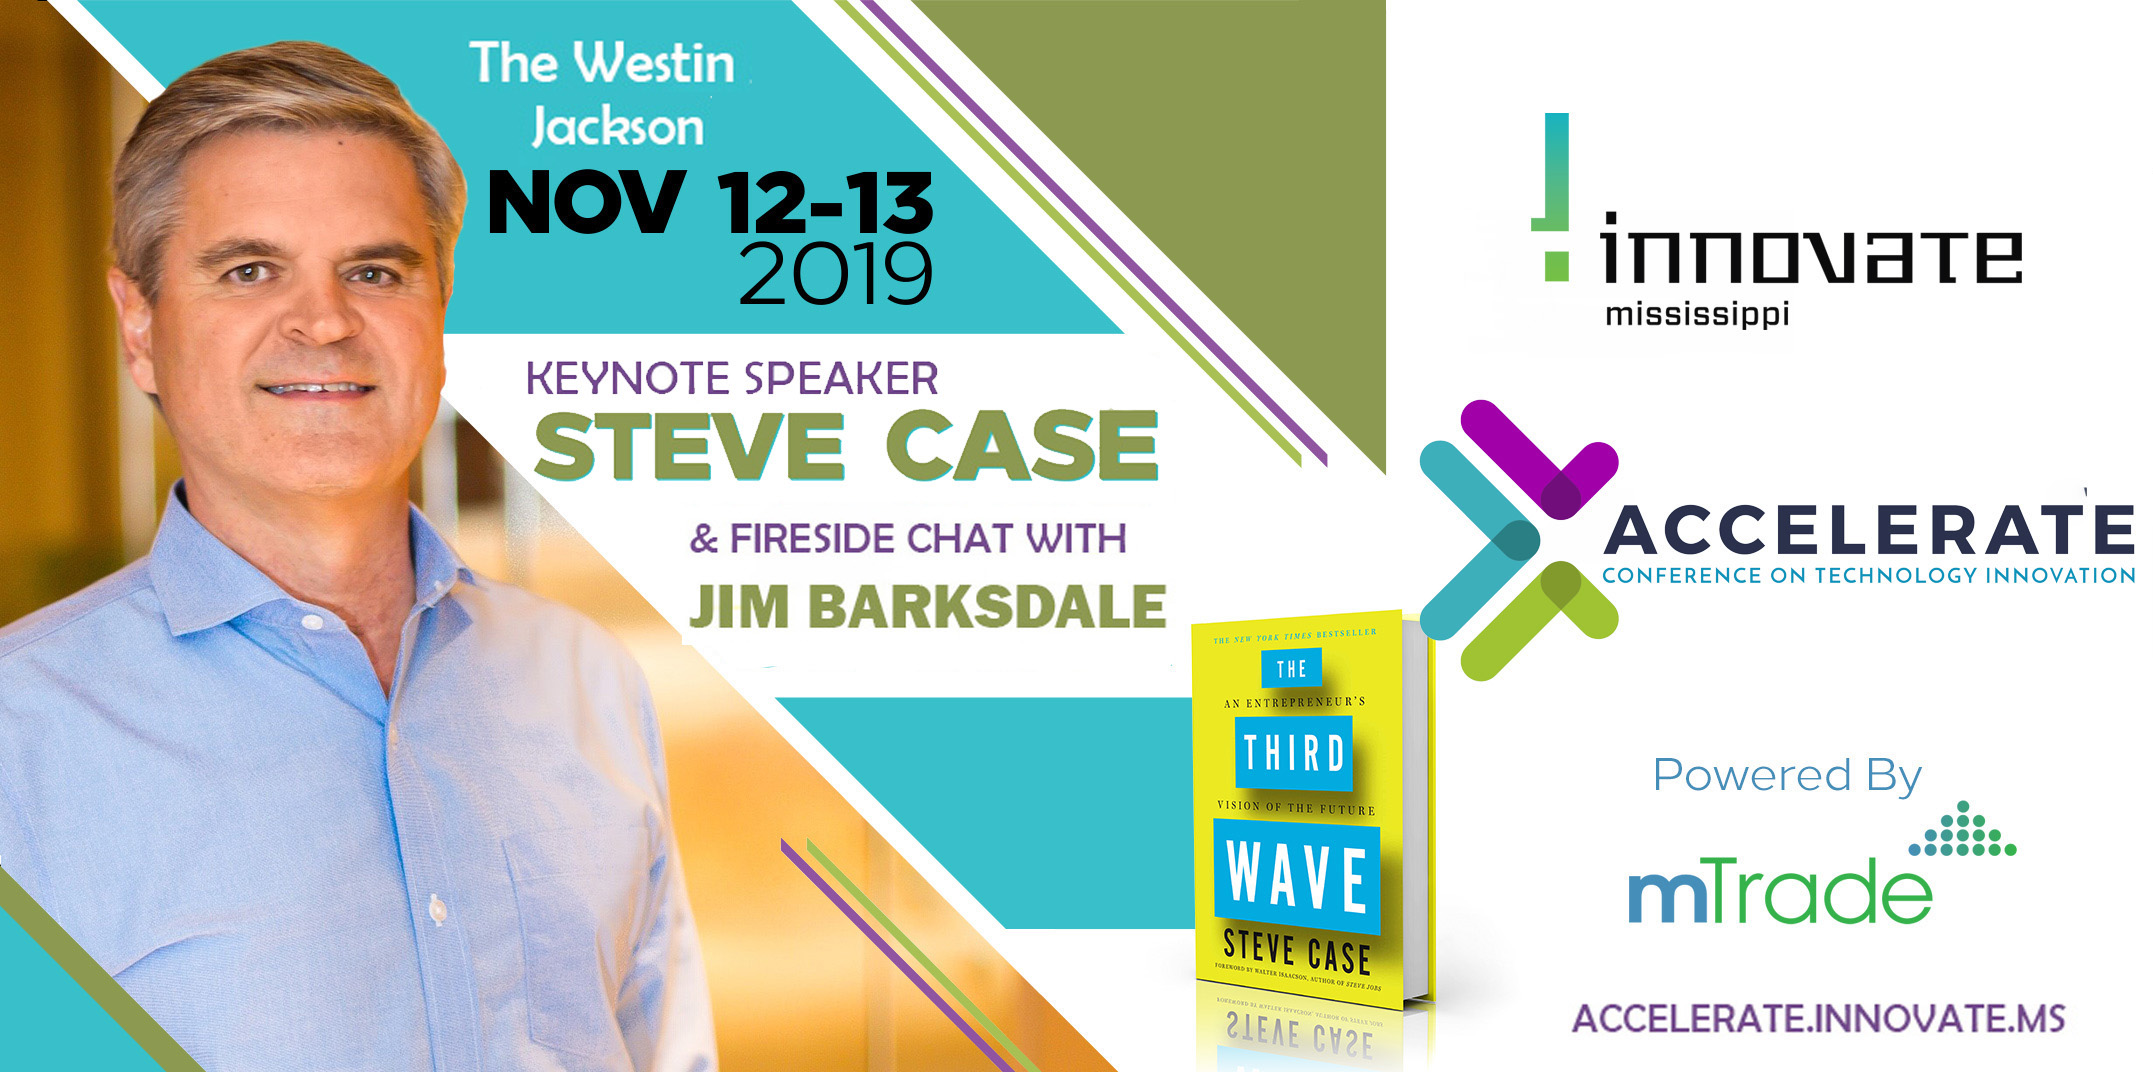 Accelerate 2019 - Steve Case - Jim Barksdale - Innovate Mississippi